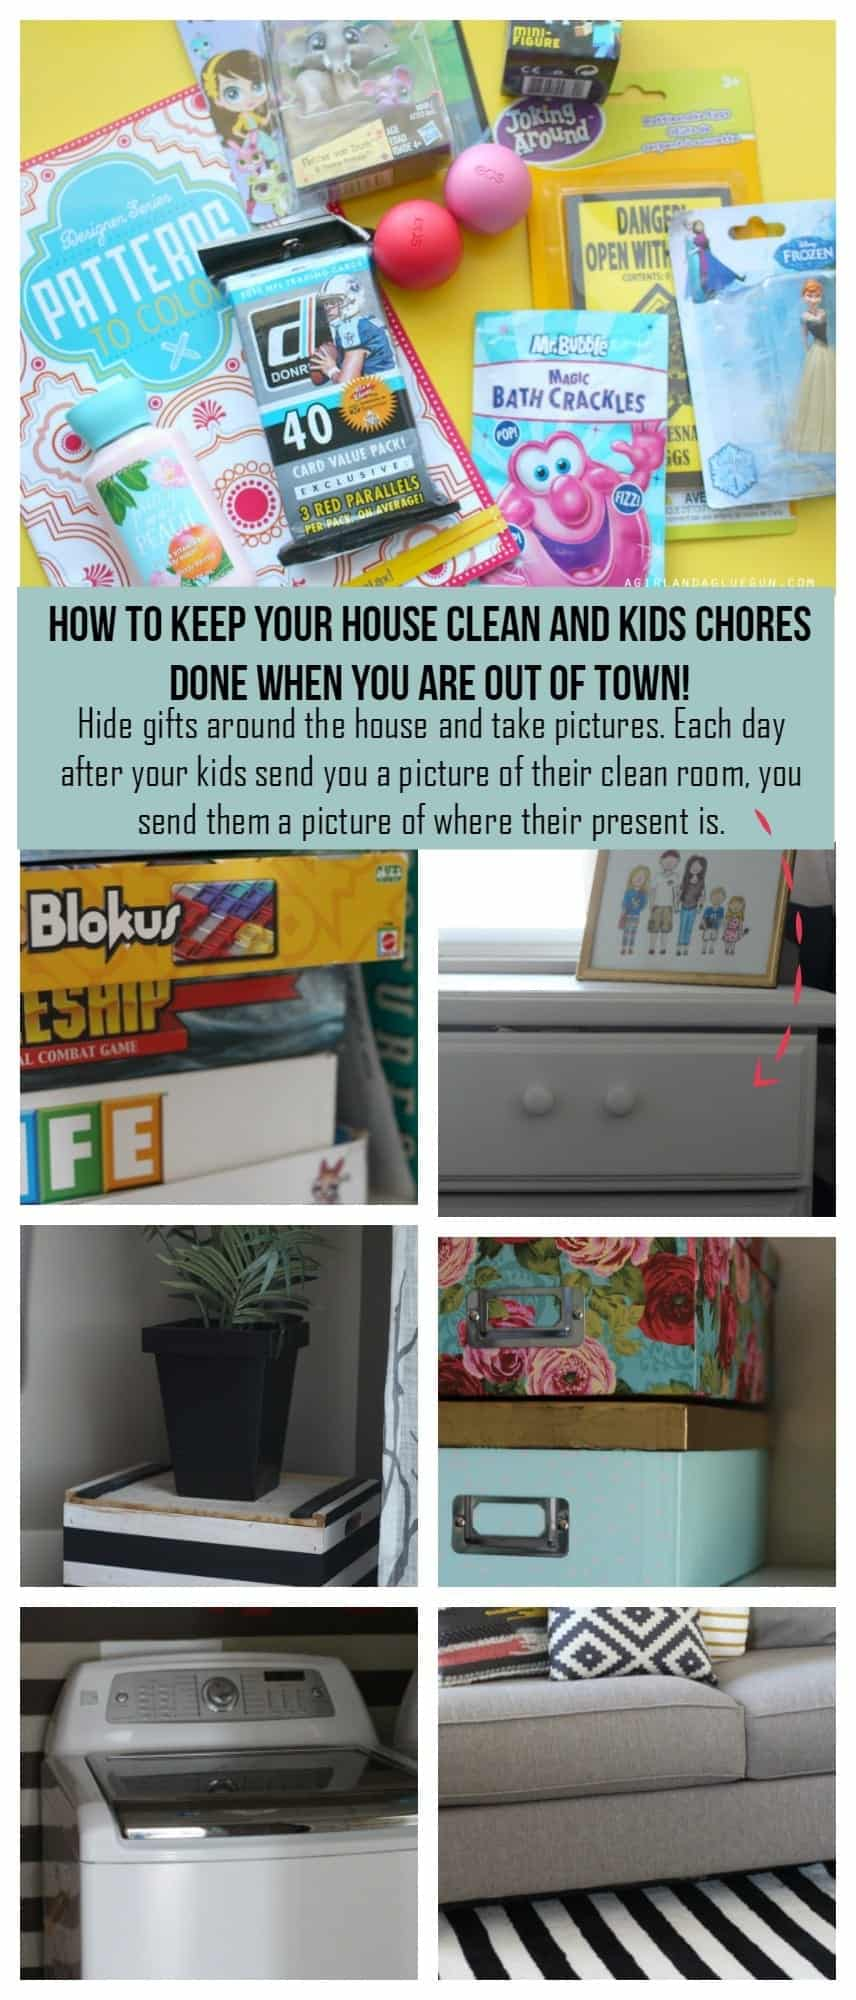 how to keep your house clean and chores done while you are out of town!